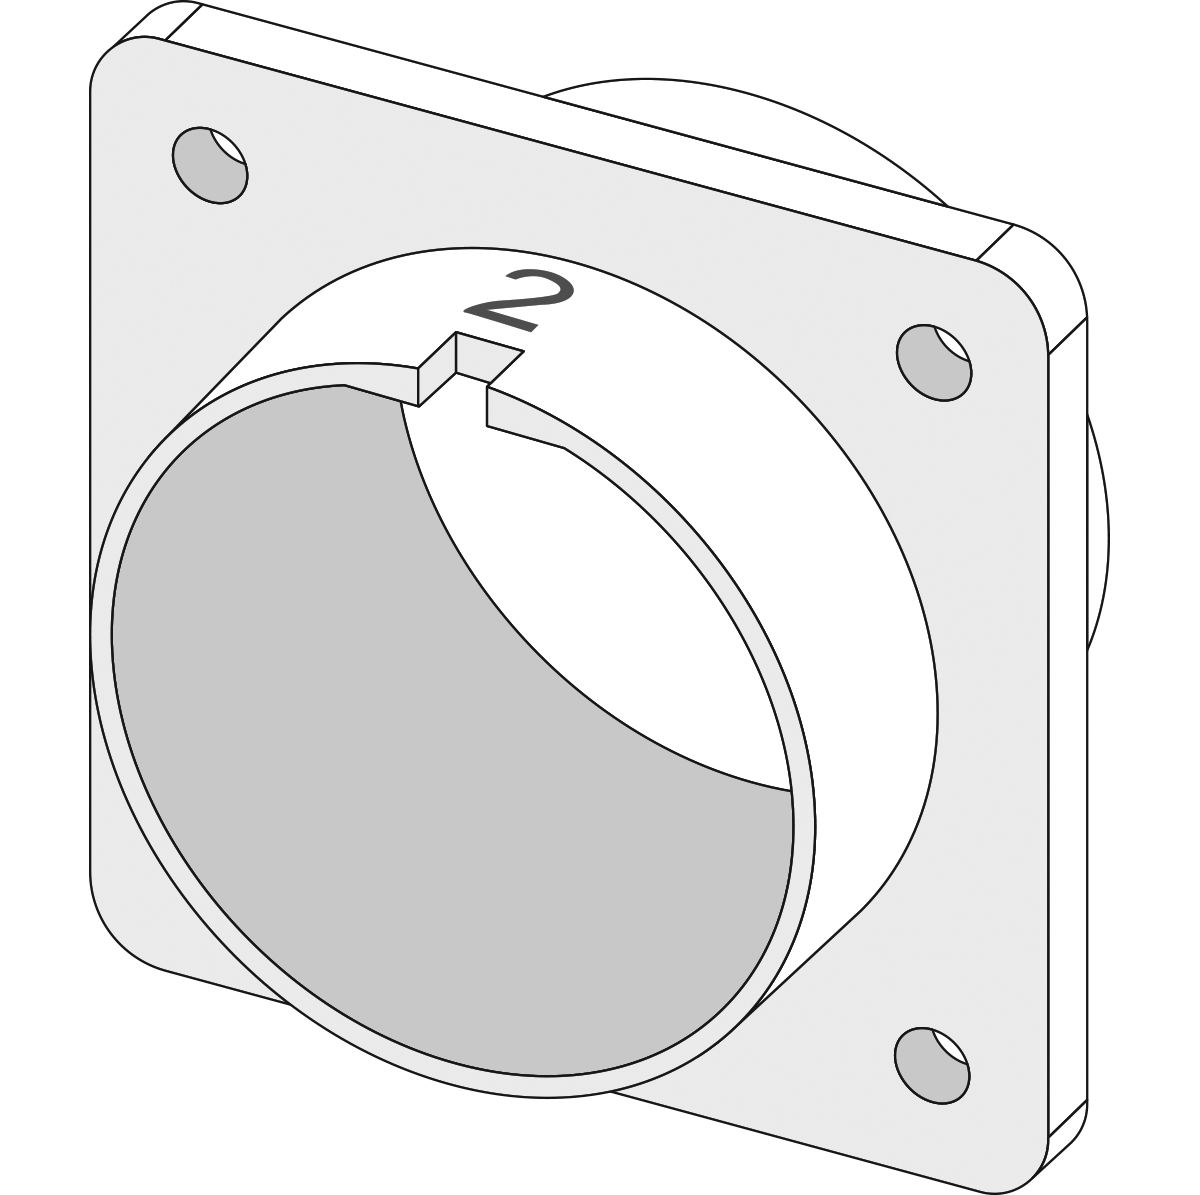 2-flange-and-screw-mount-extended.png